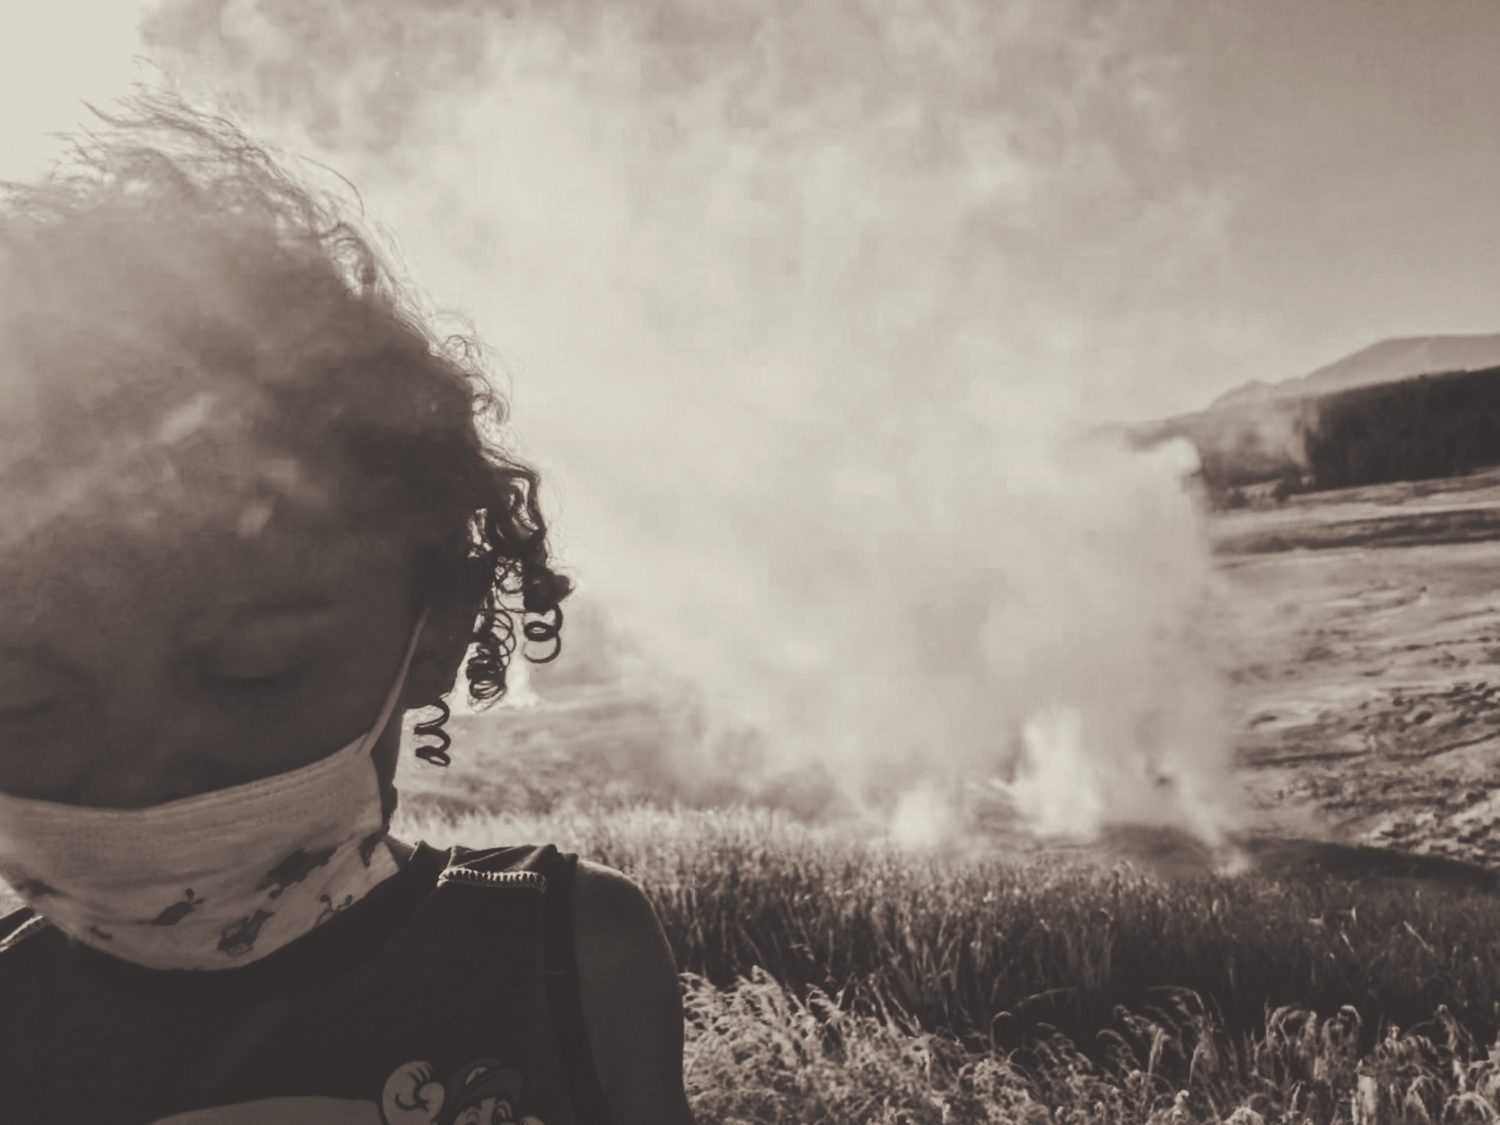 Young girl looking down with a mask on with grass burning in the background